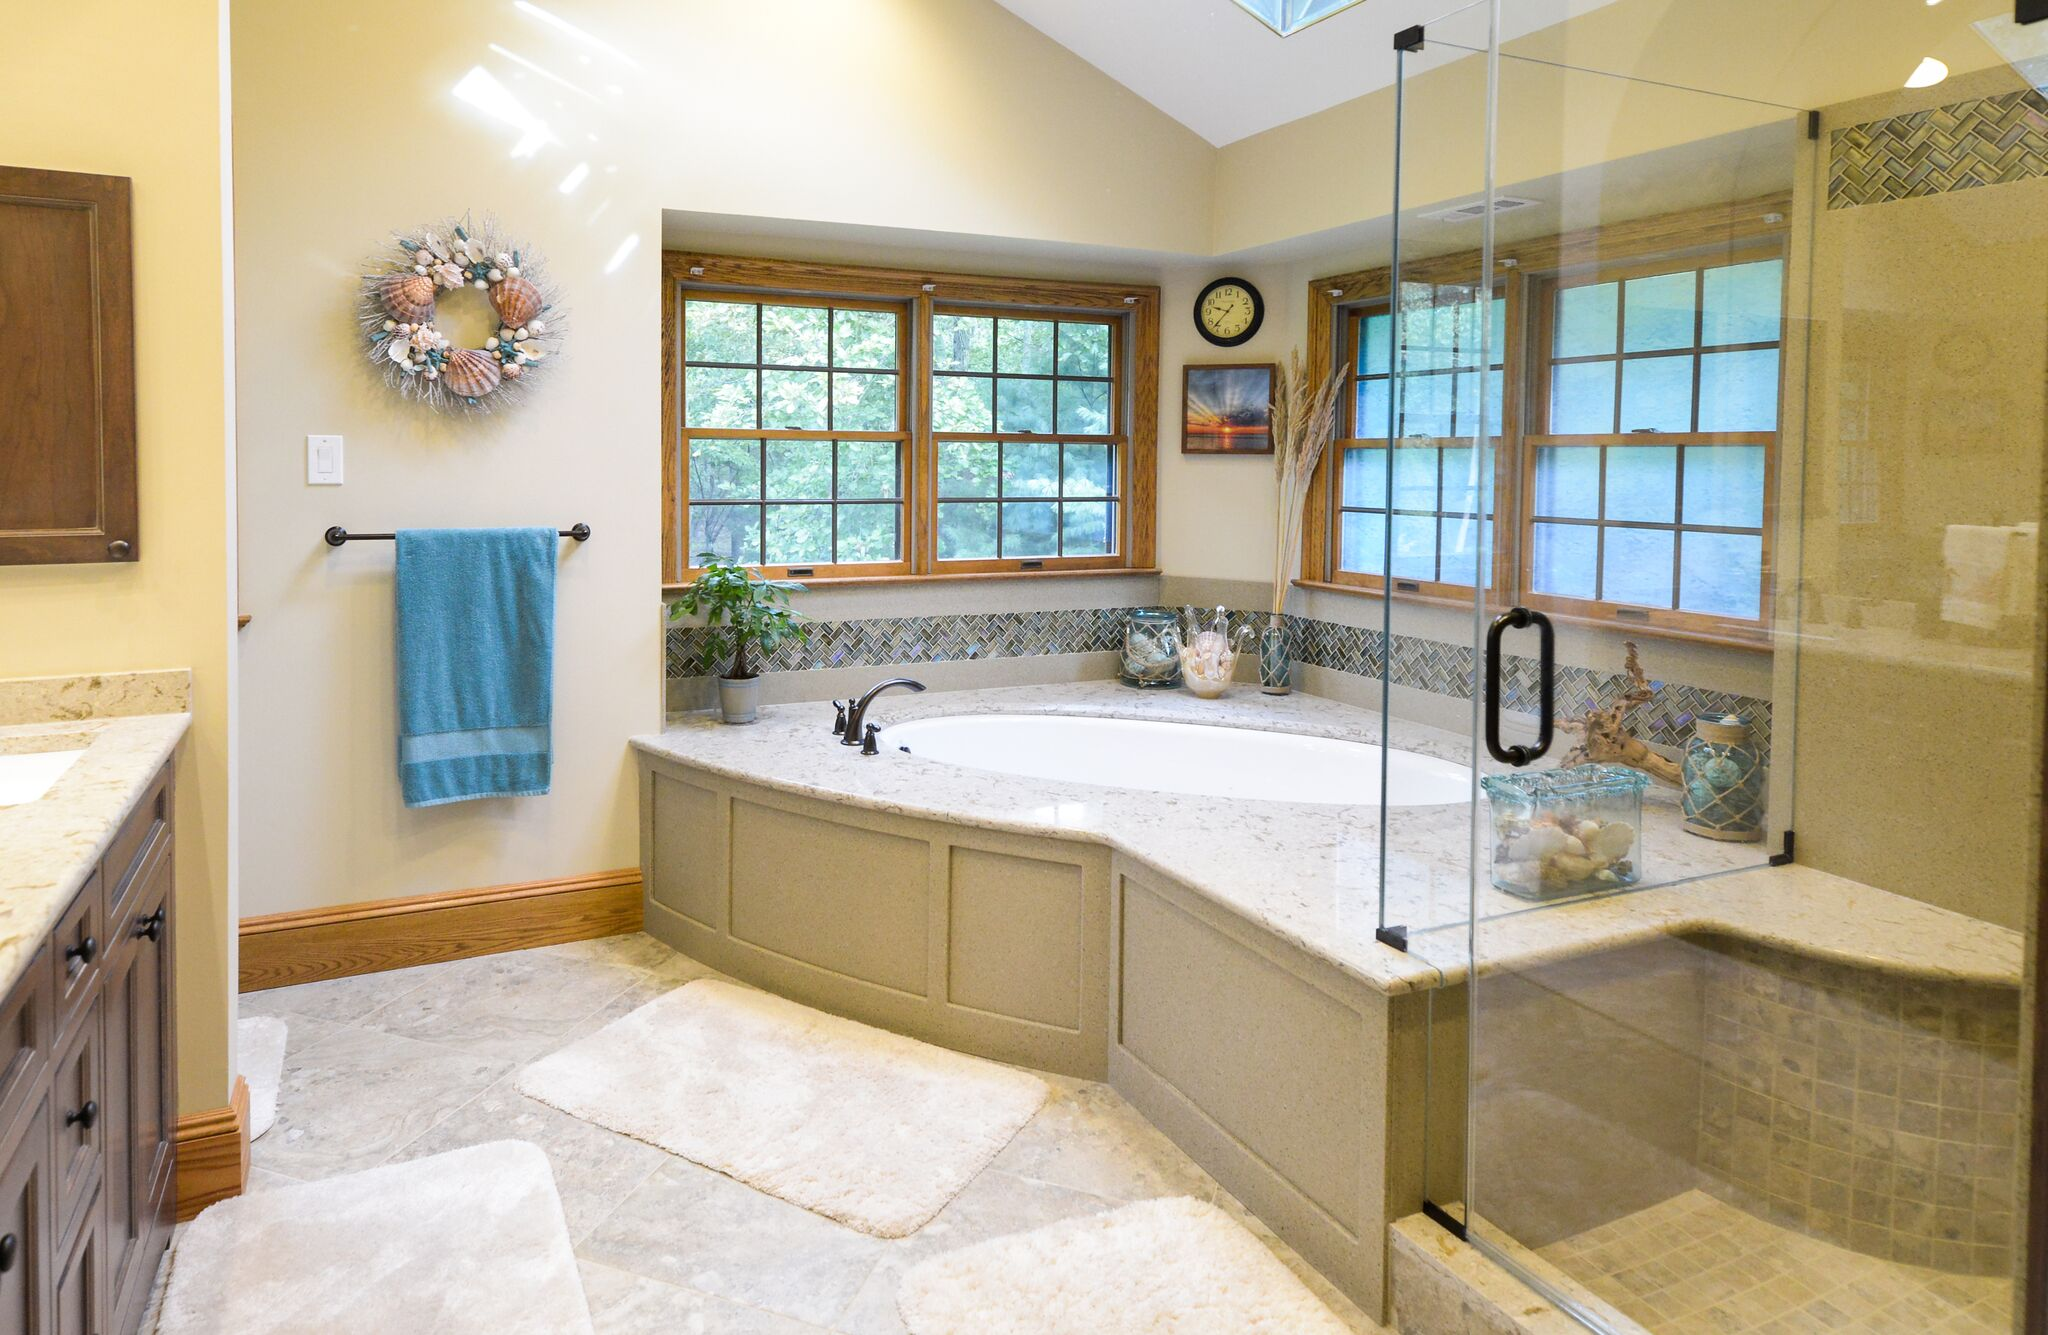 Bathroom Remodeling Cherry Hill NJ Nuss Construction - Is a bathroom remodel worth it